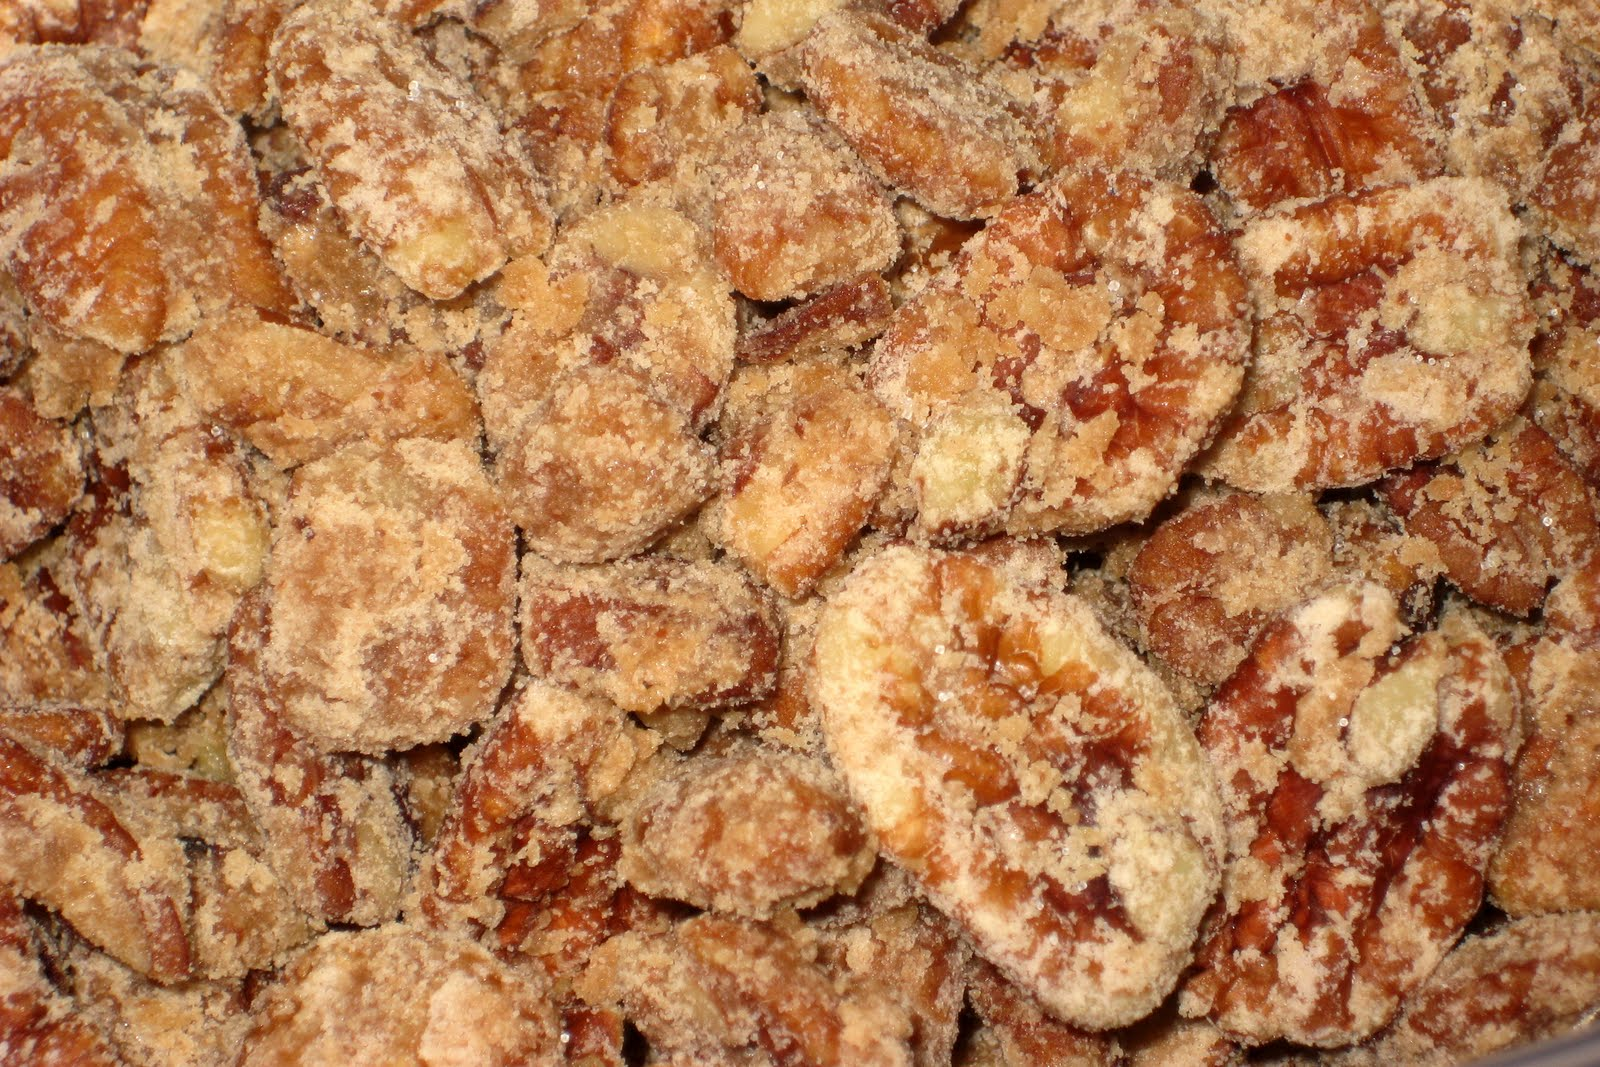 ... bourbon pecans bourbon old fashioned glazed pecans candied pecans 2